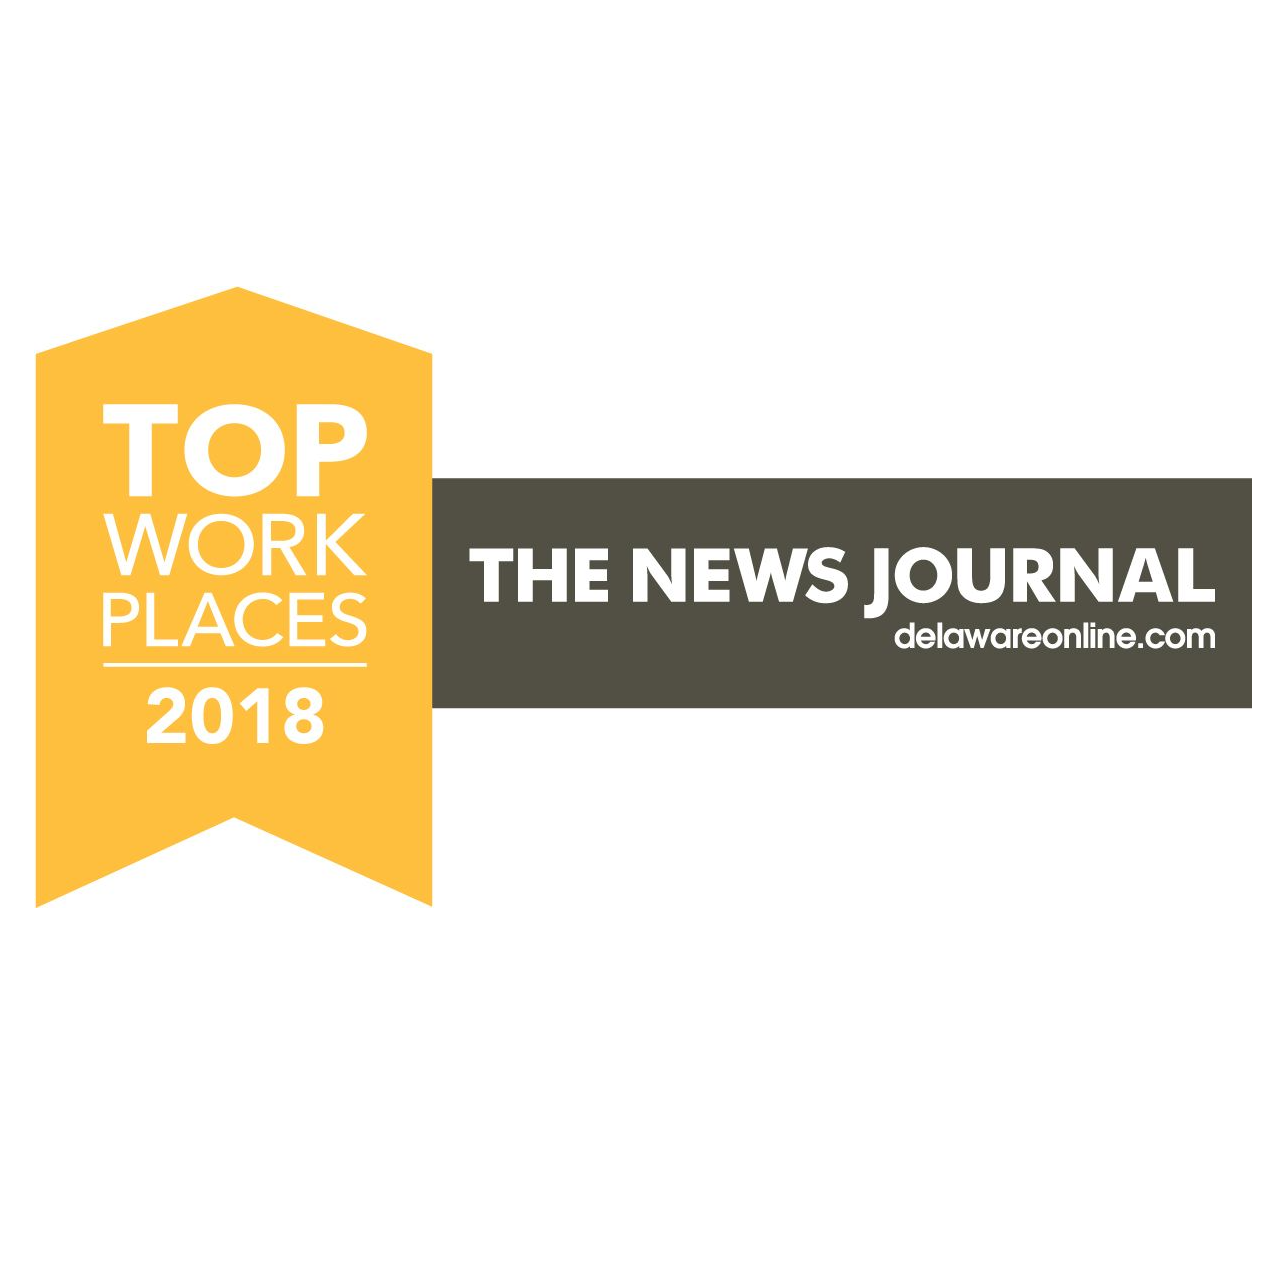 Delaware's Top Workplaces of 2018